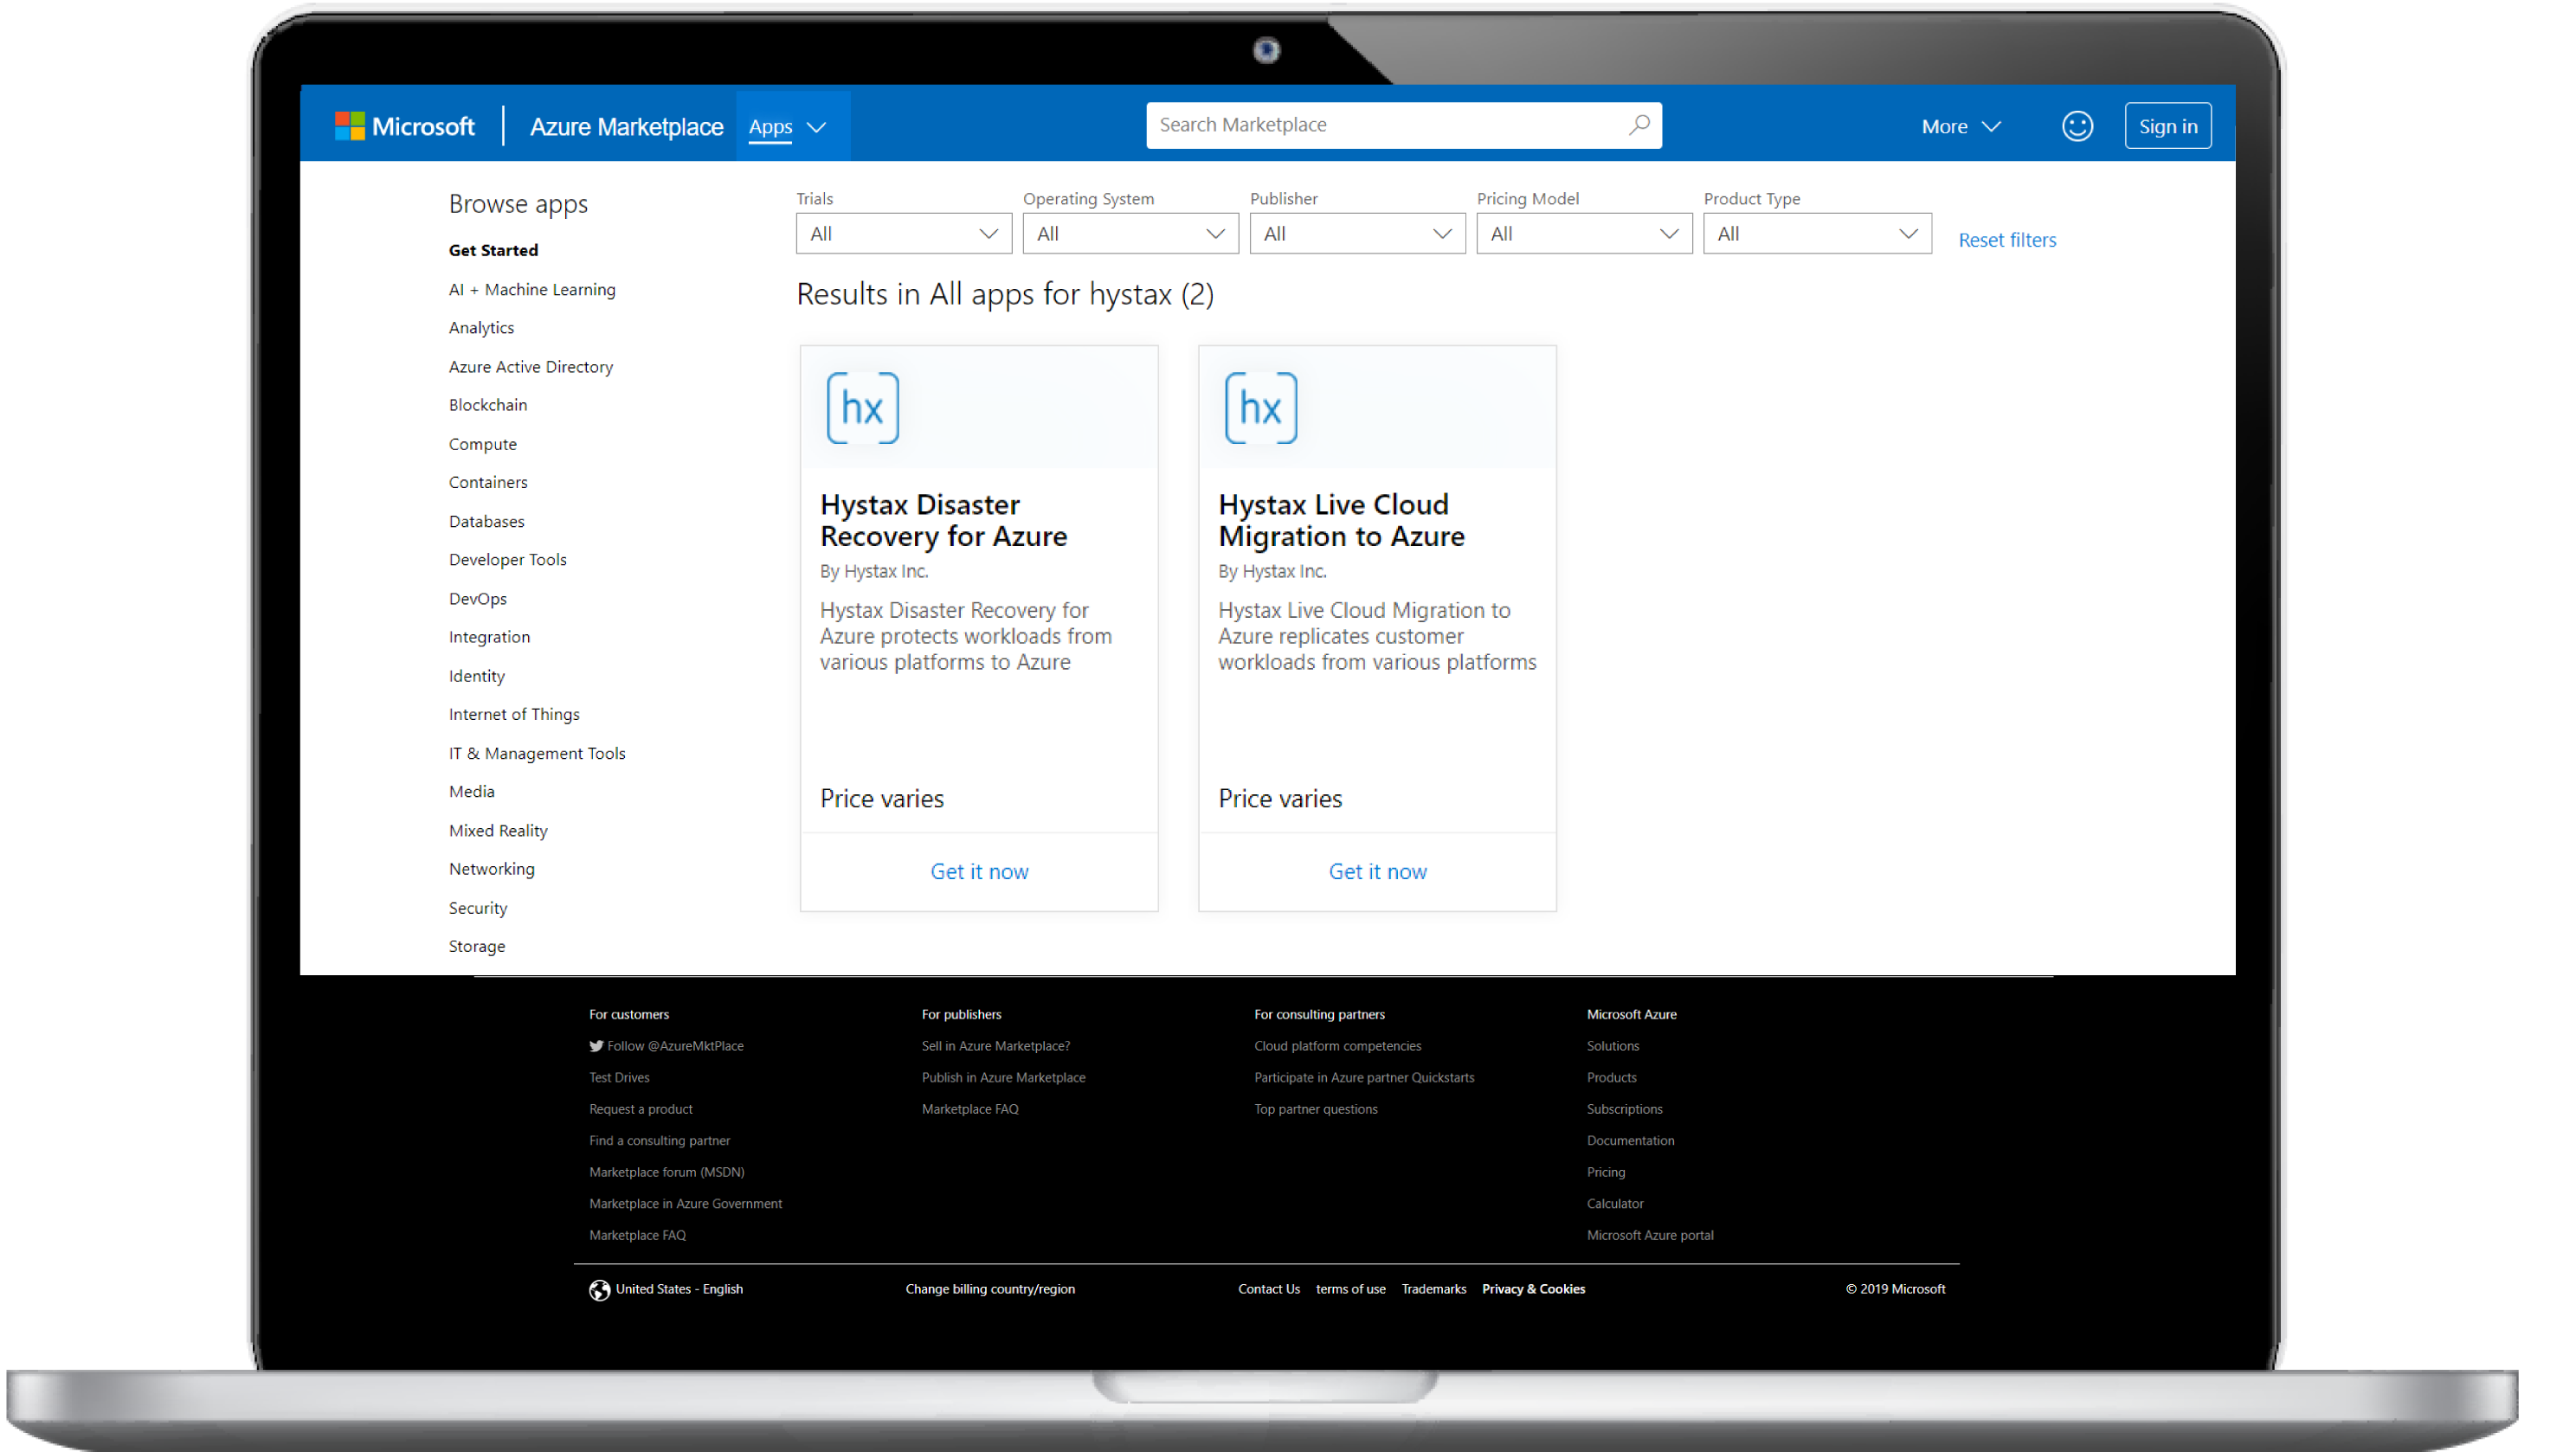 Hystax's solutions on MS Azure marketplace